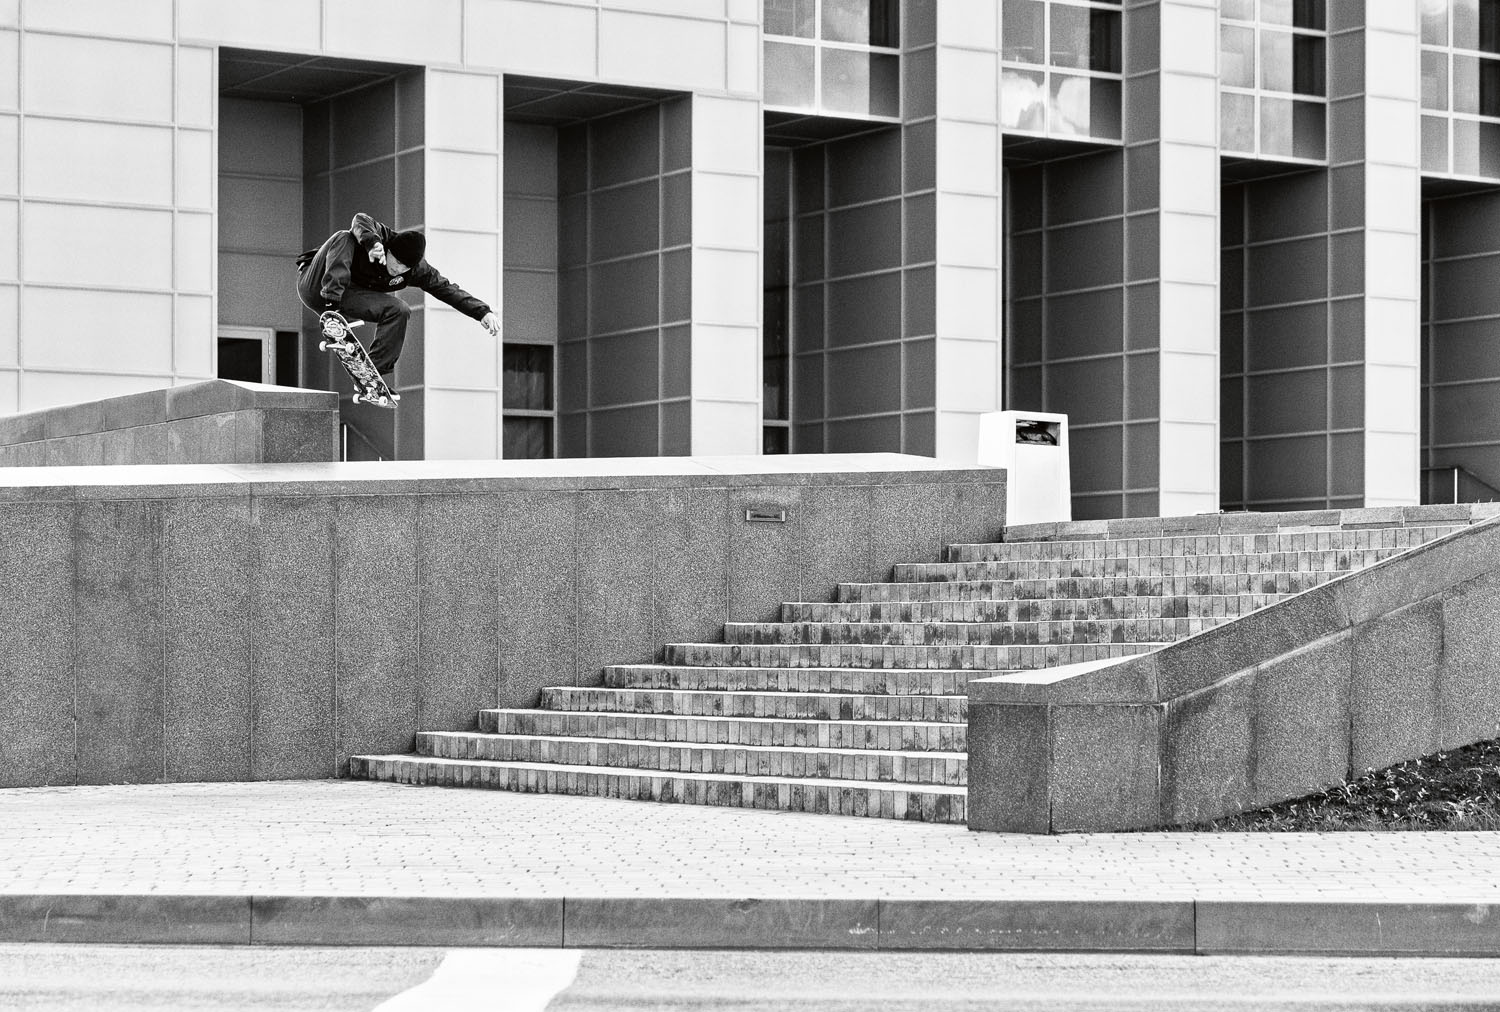 Karsten_Kleppan_Wallie_From_Behind_NotSharpened_AdobeRGB_3065_B&W